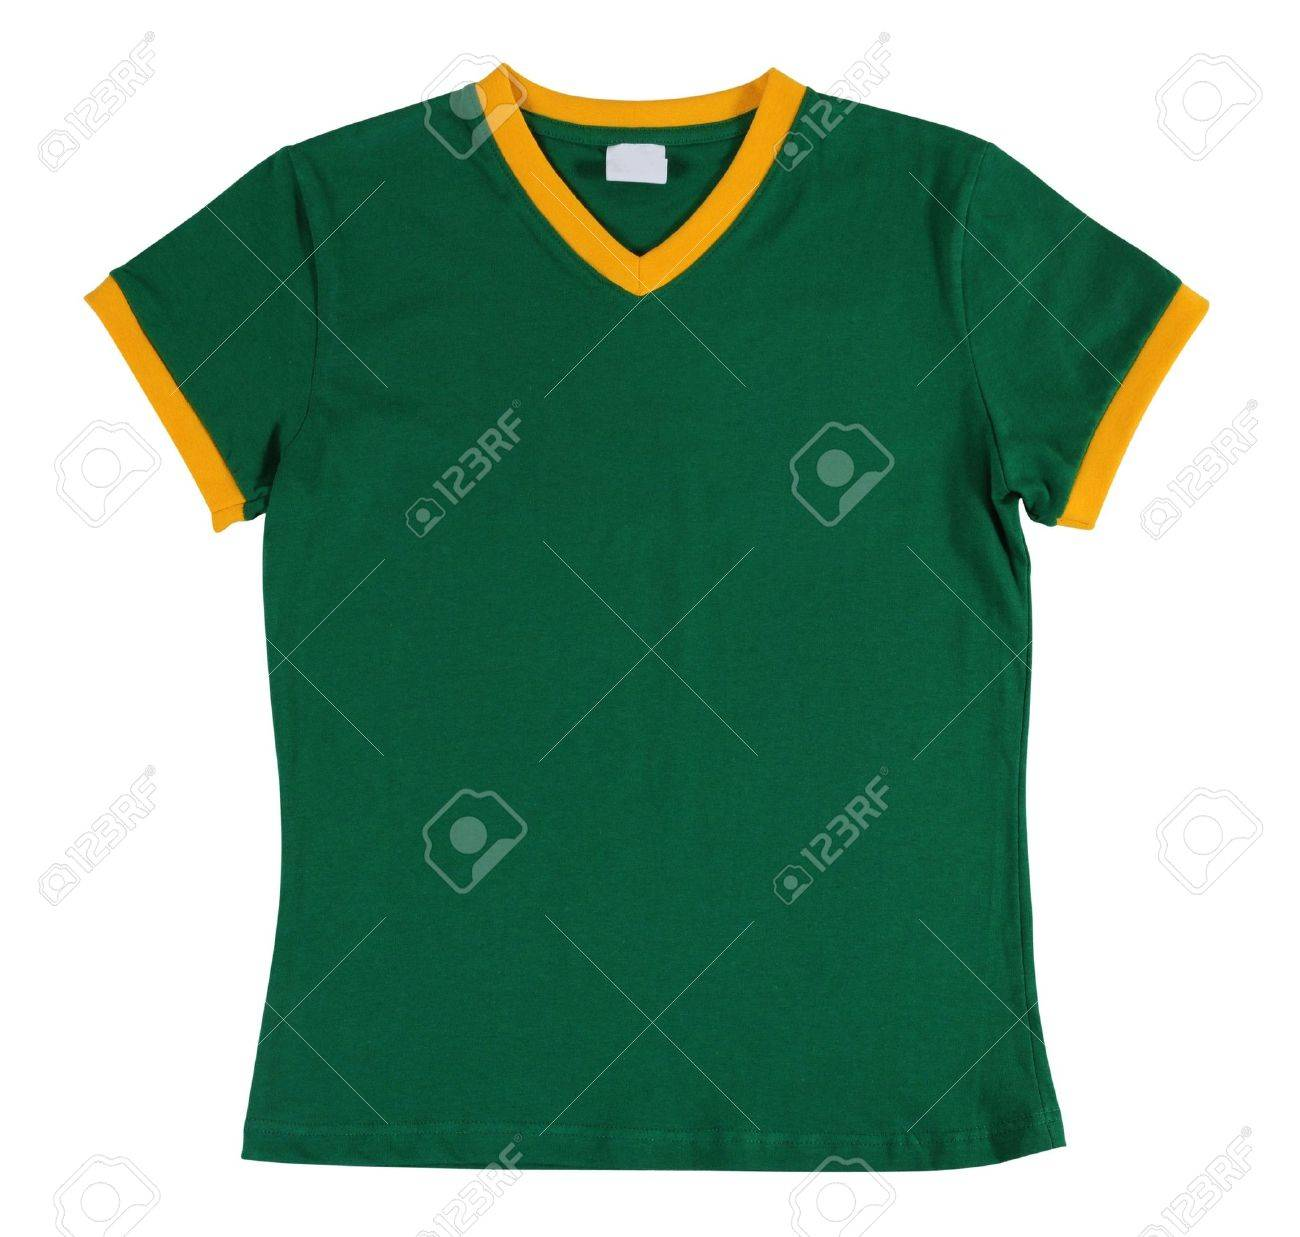 Design t shirt soccer - Green T Shirt Isolated Stock Photo 7330886